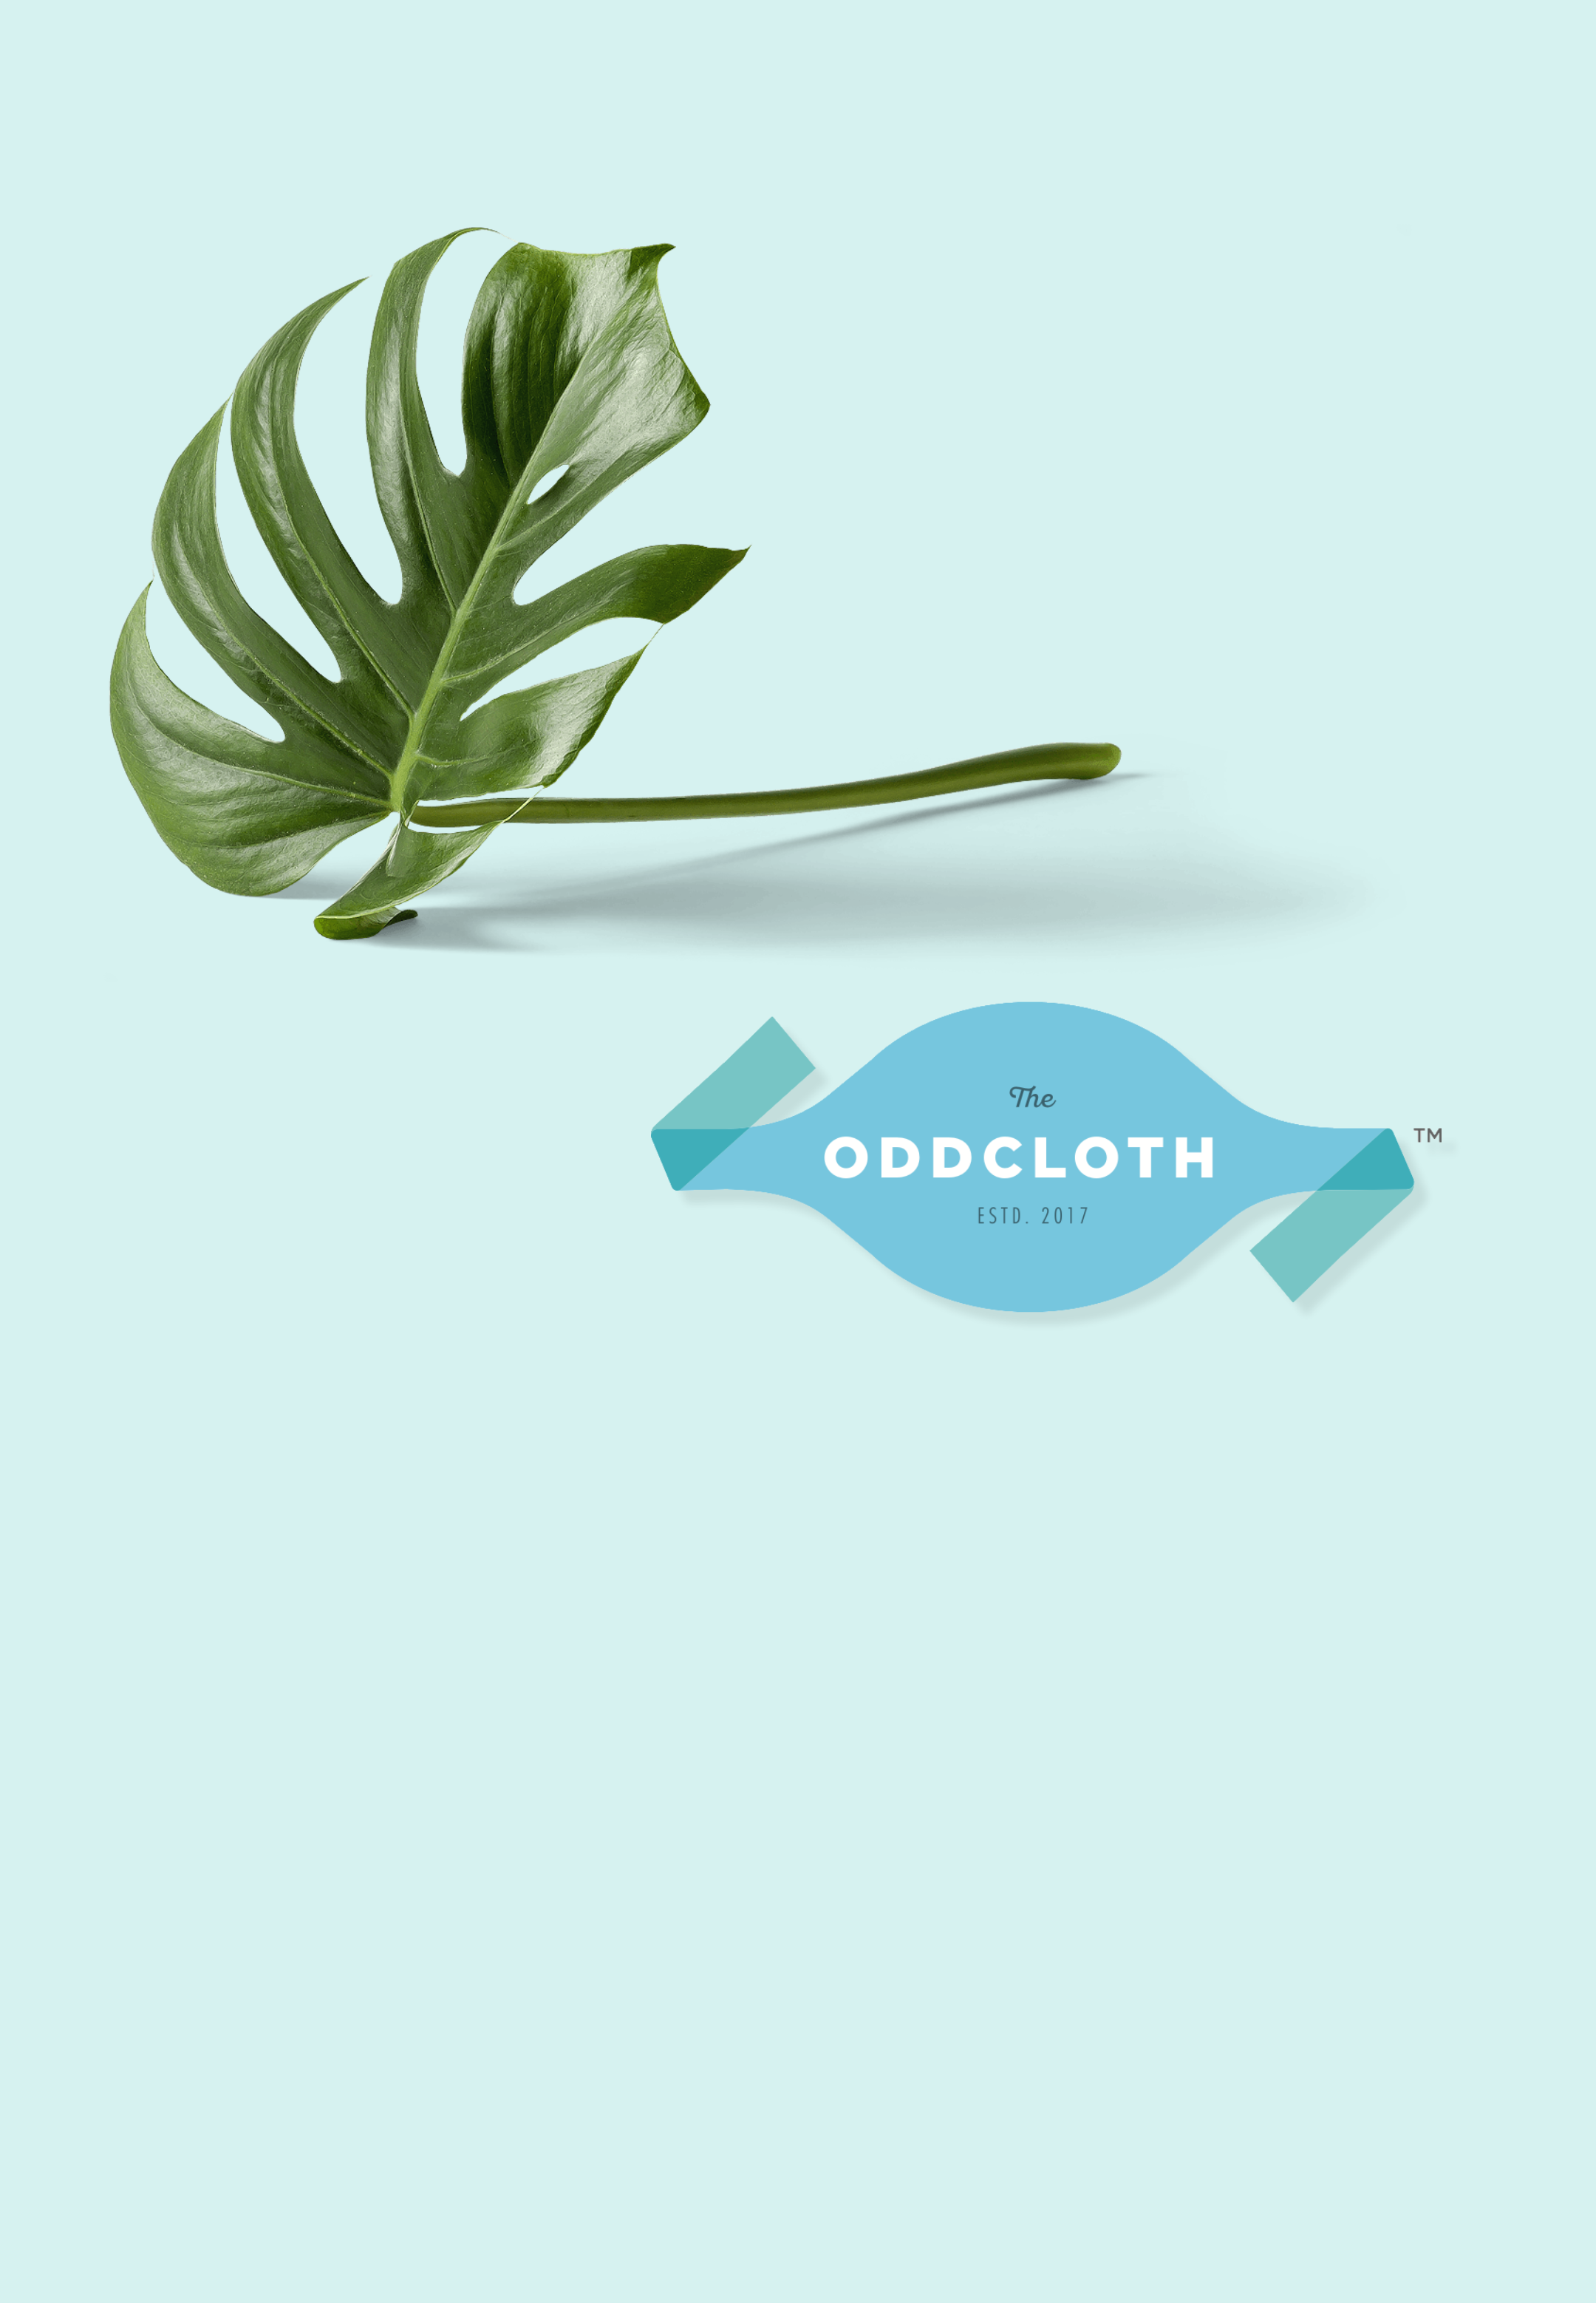 The Oddcloth Benefits